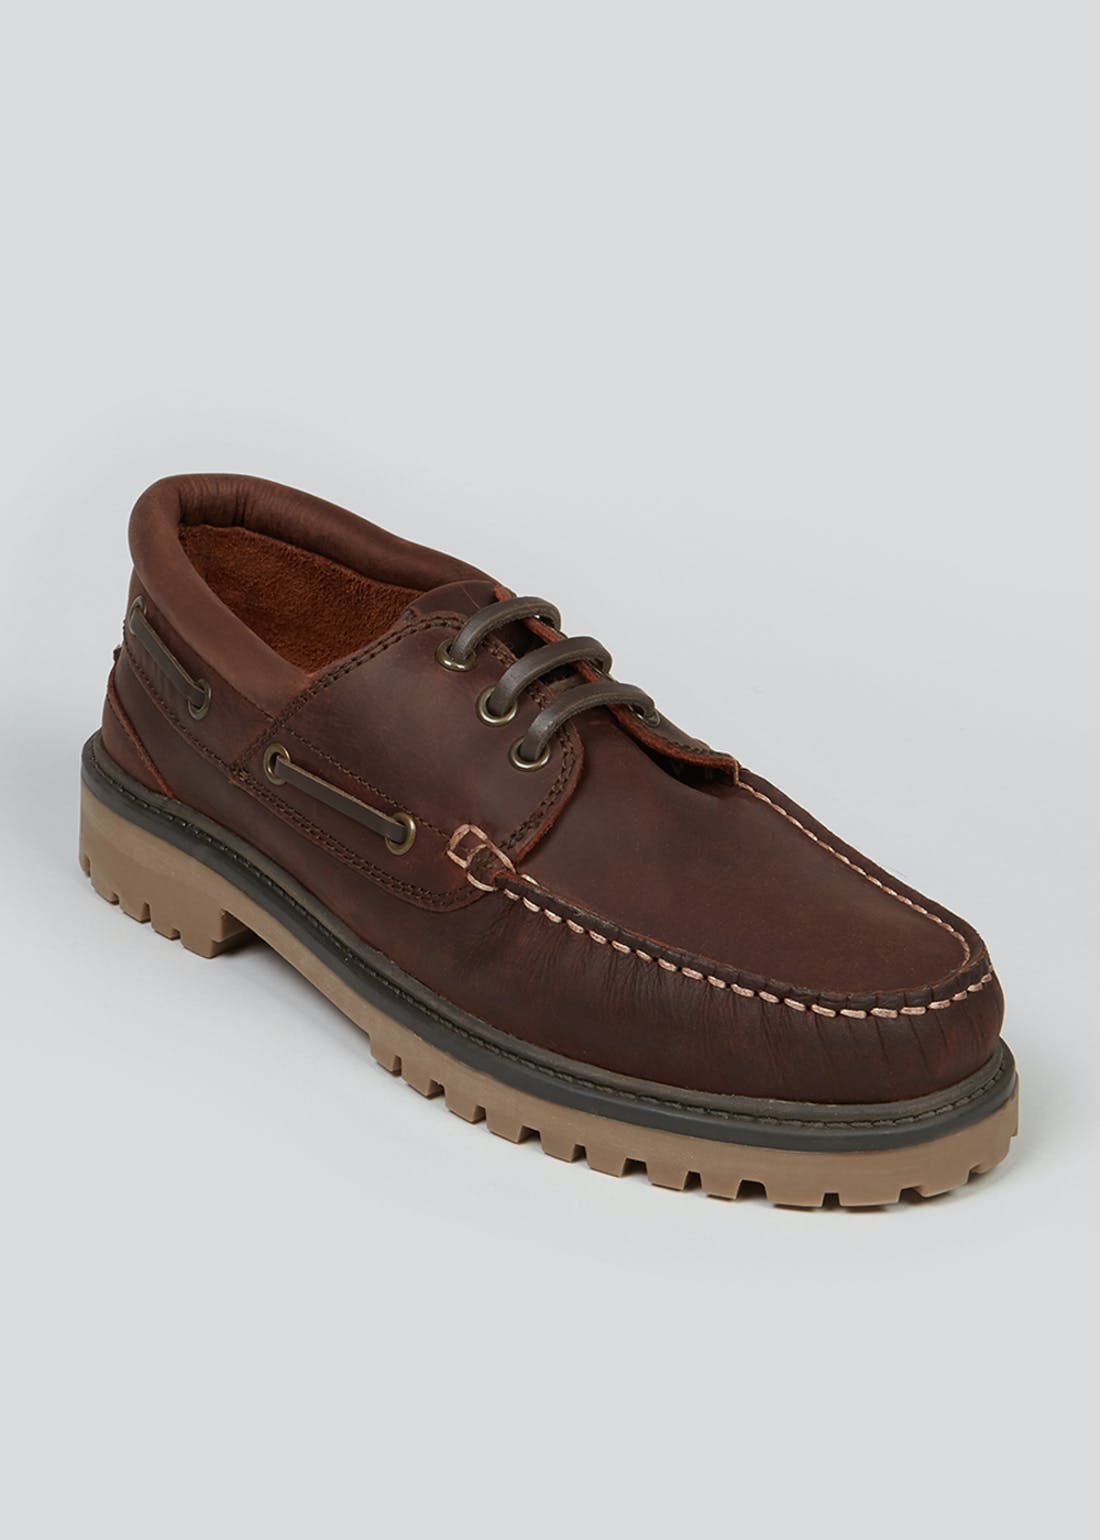 Real Leather Tan Boat Shoes